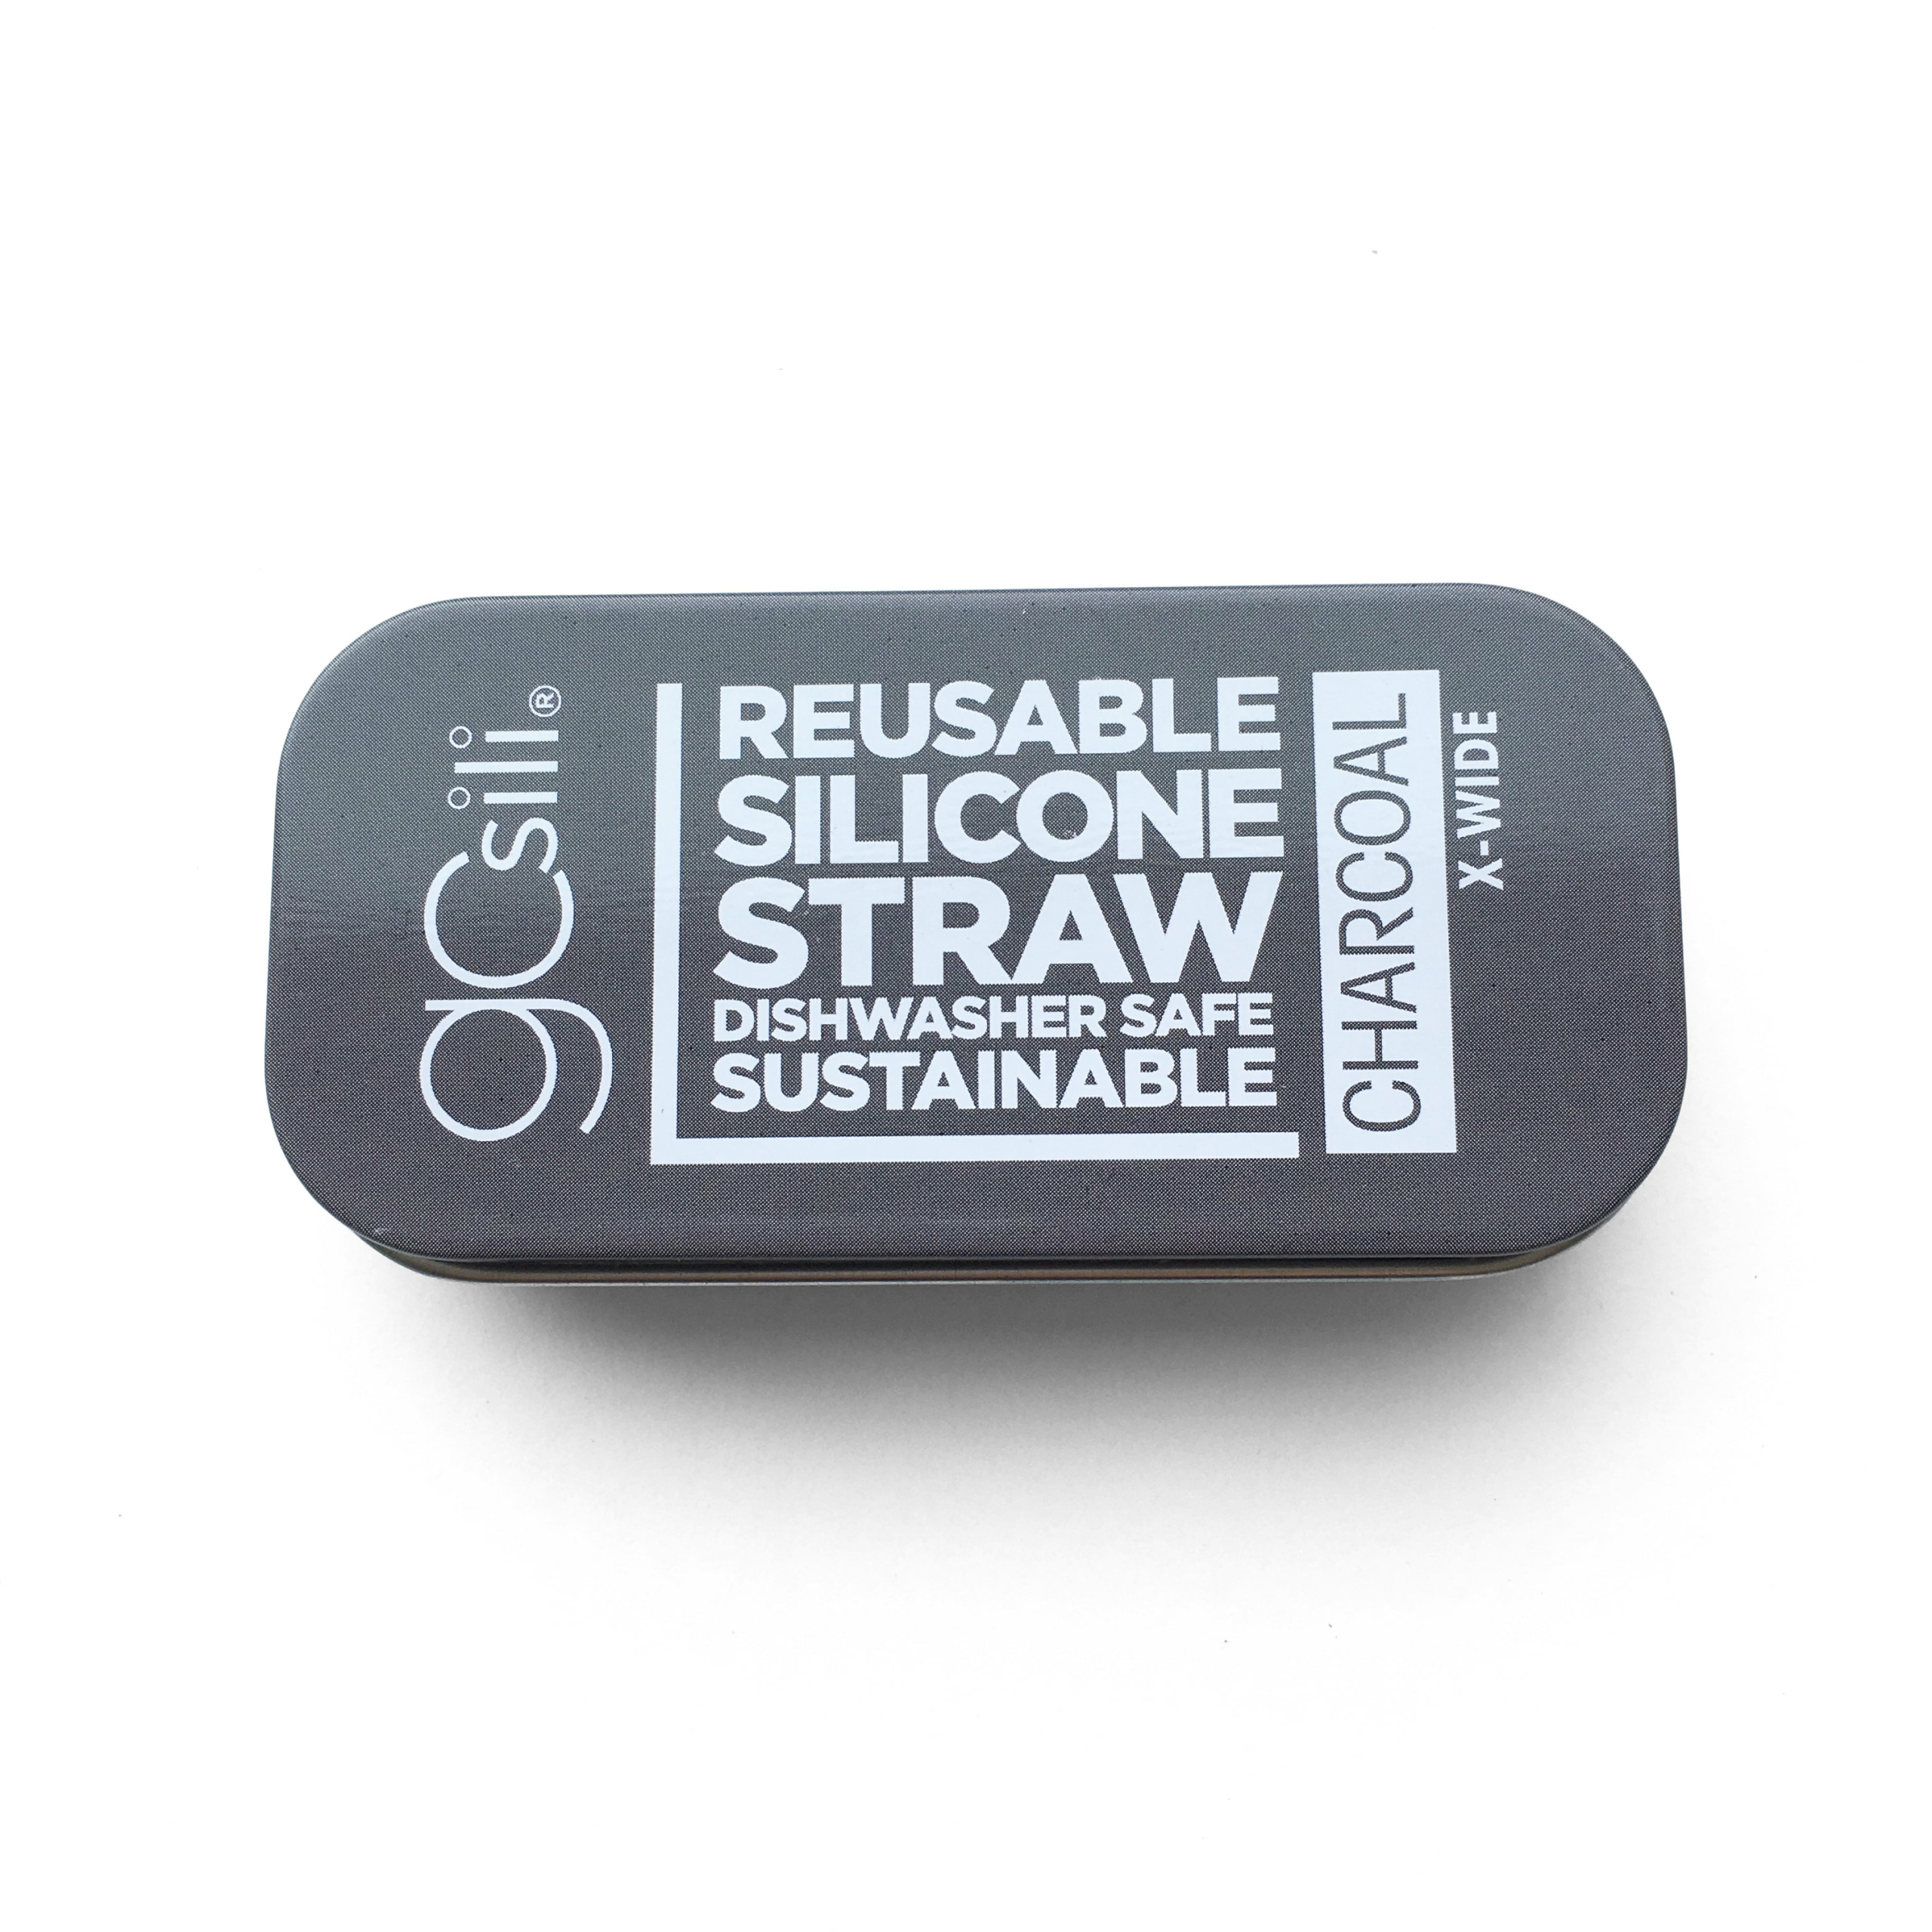 Reusable Silicone Straw X-Wide Travel Case Charcoal